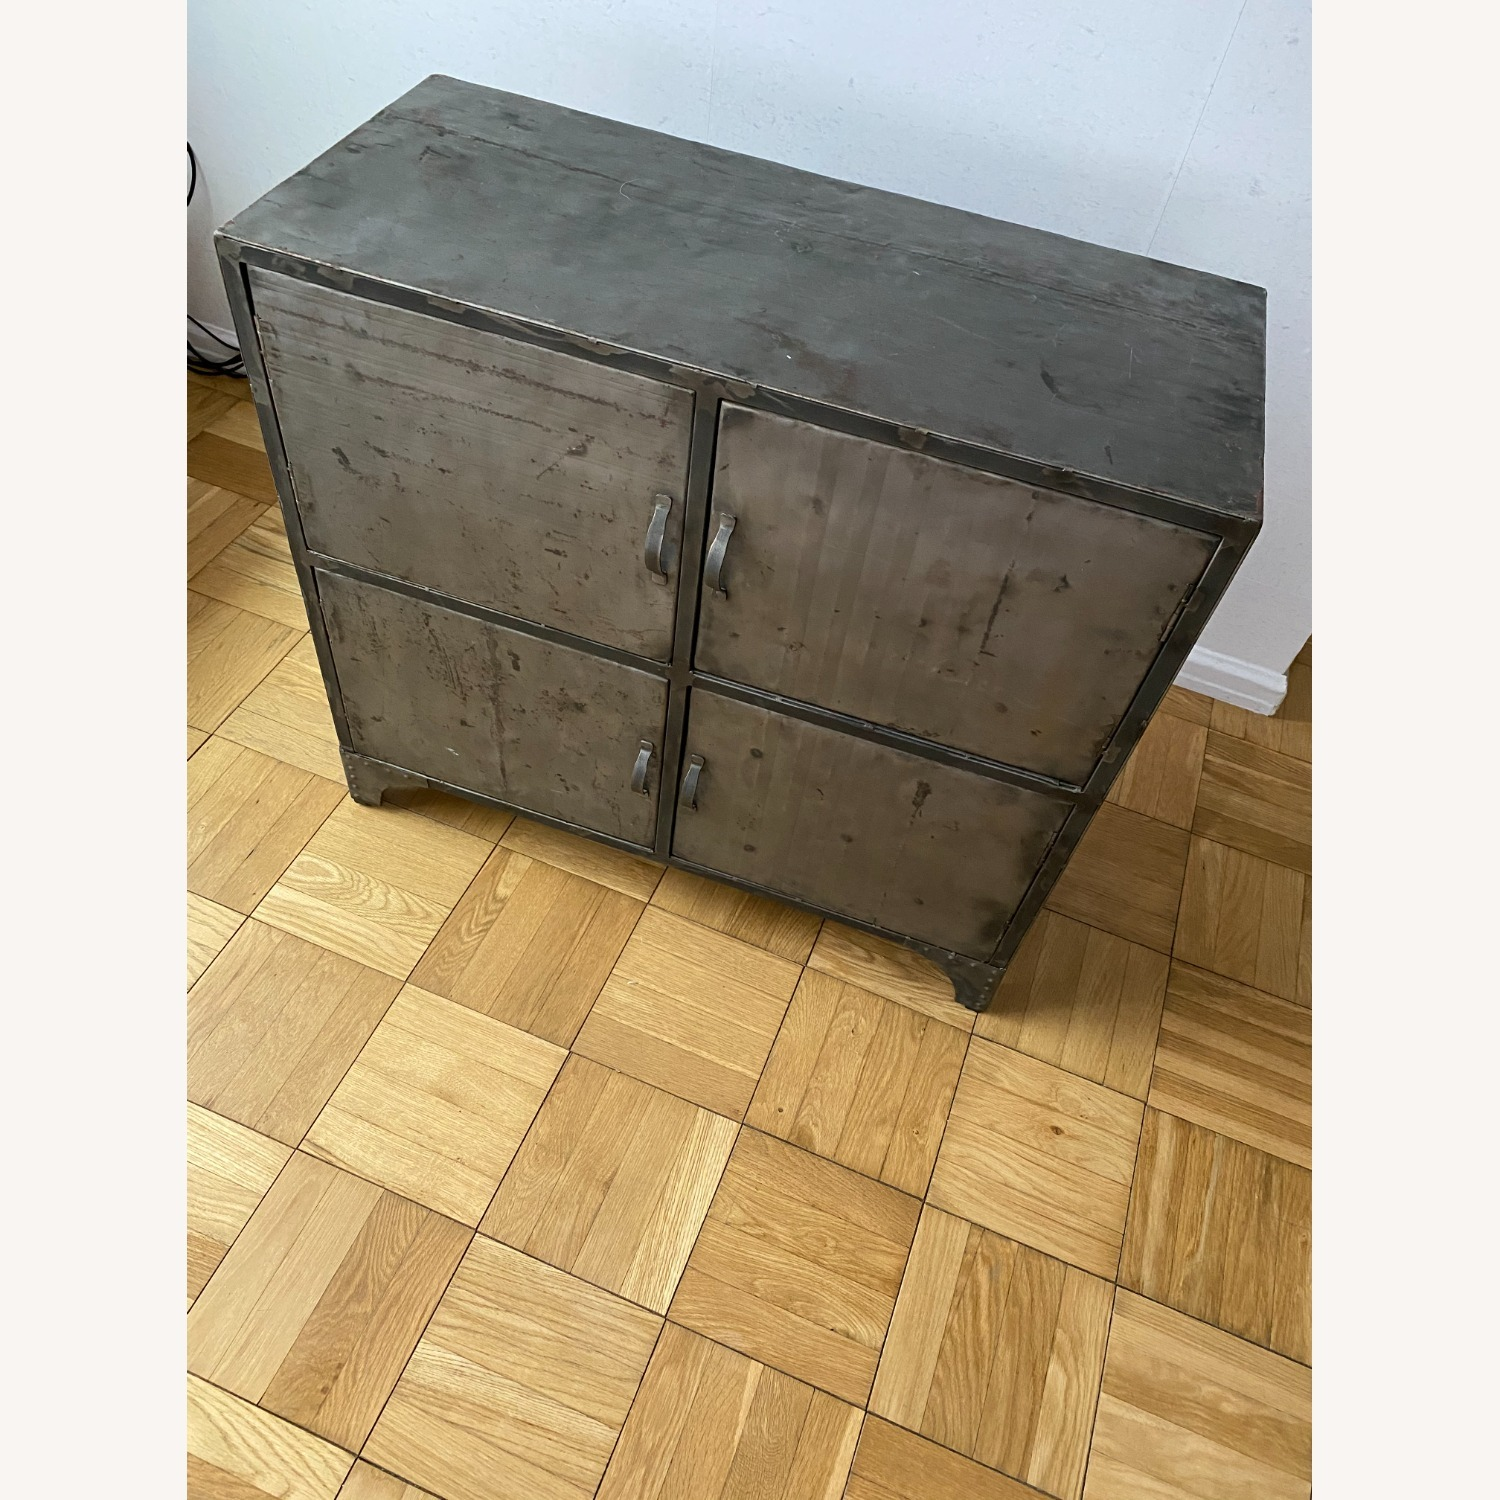 From The Source Recycled Oil Drum 4-Door Designer Cabinet - image-4